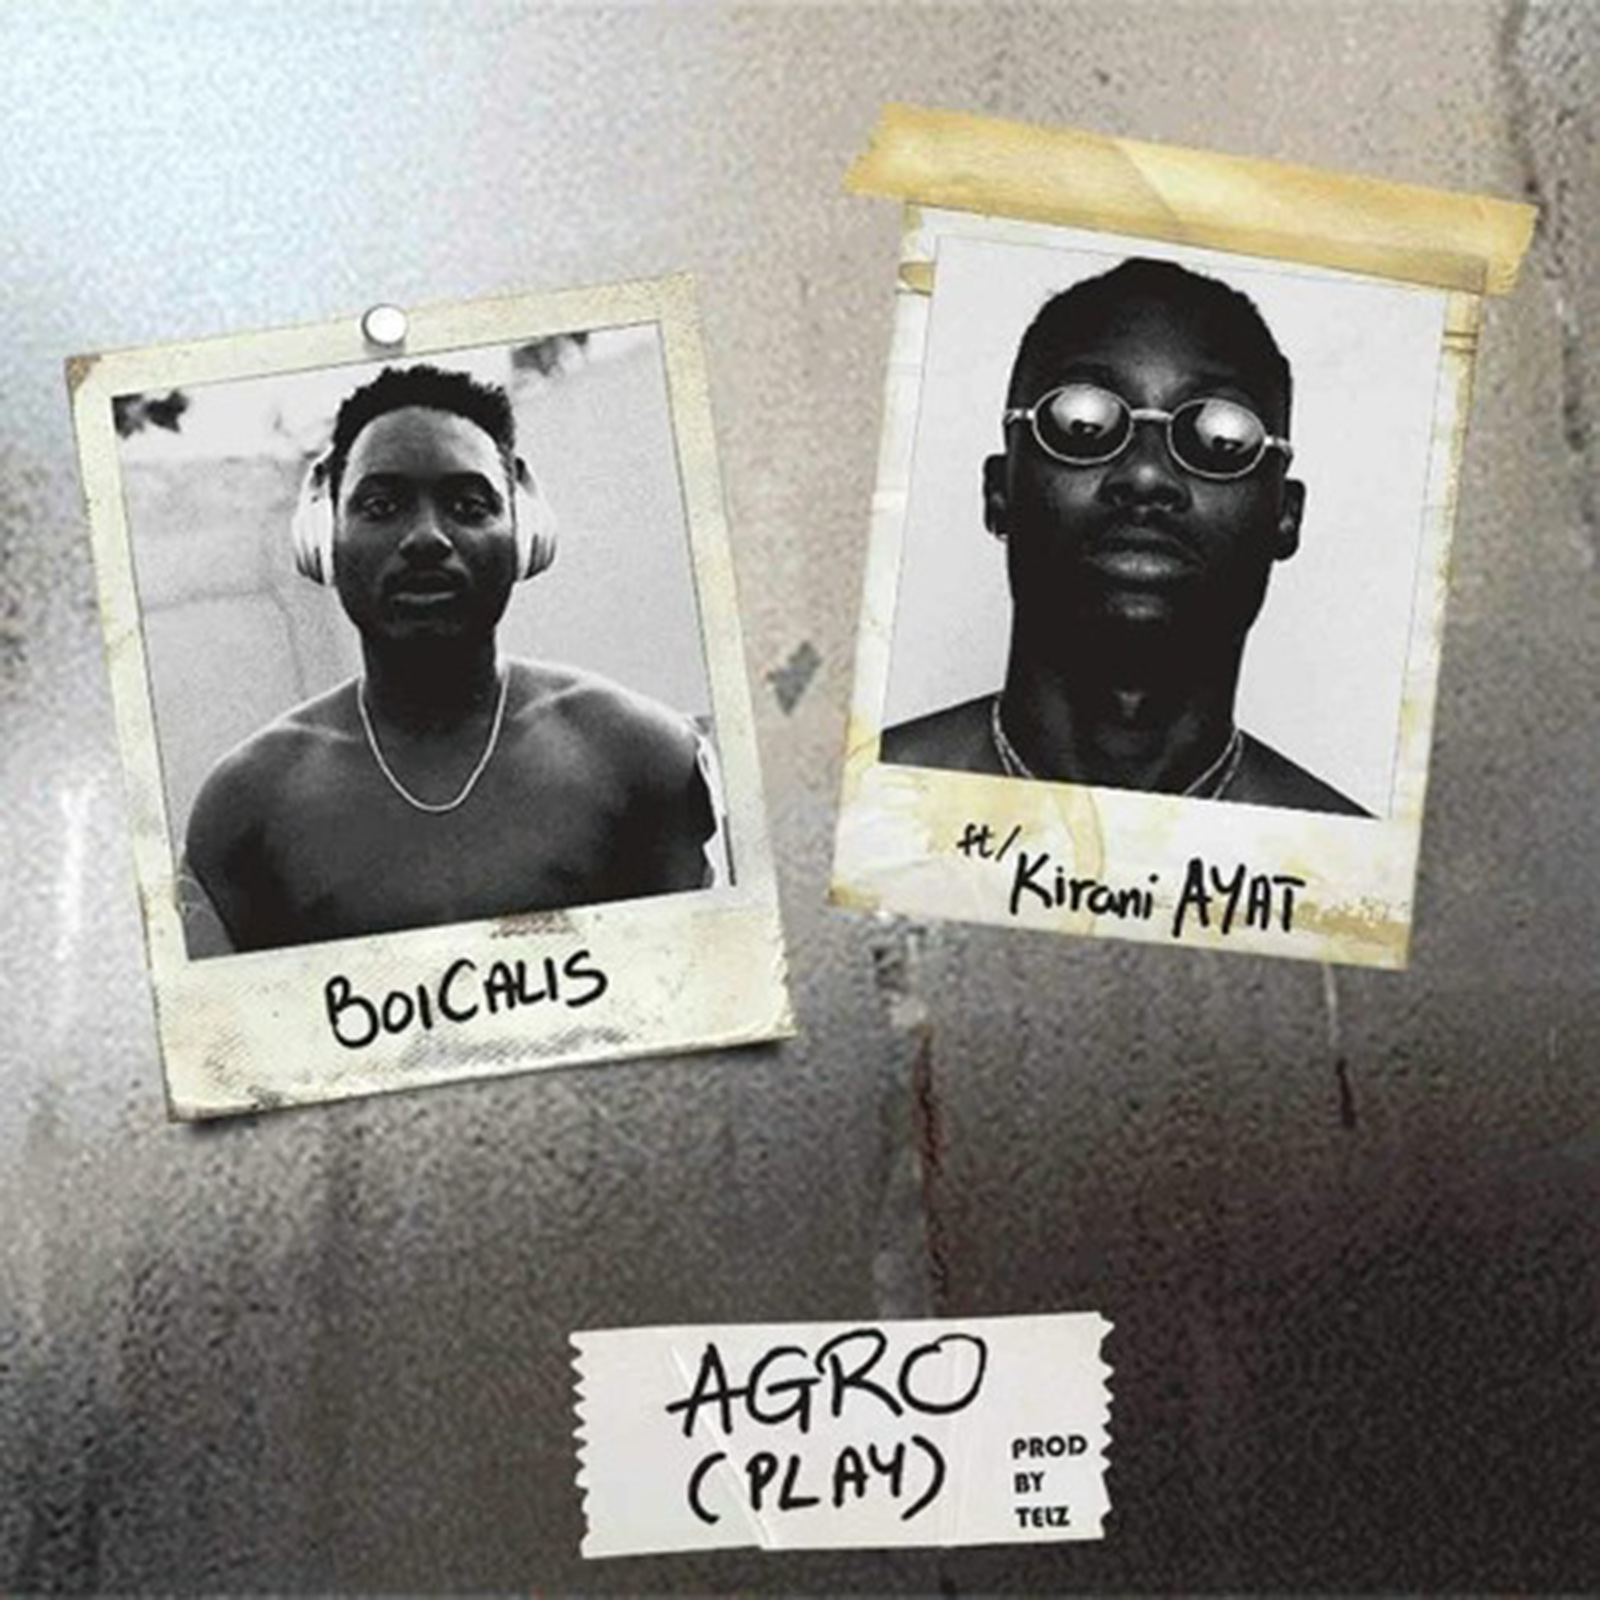 Agro by Boicalis feat. AYAT